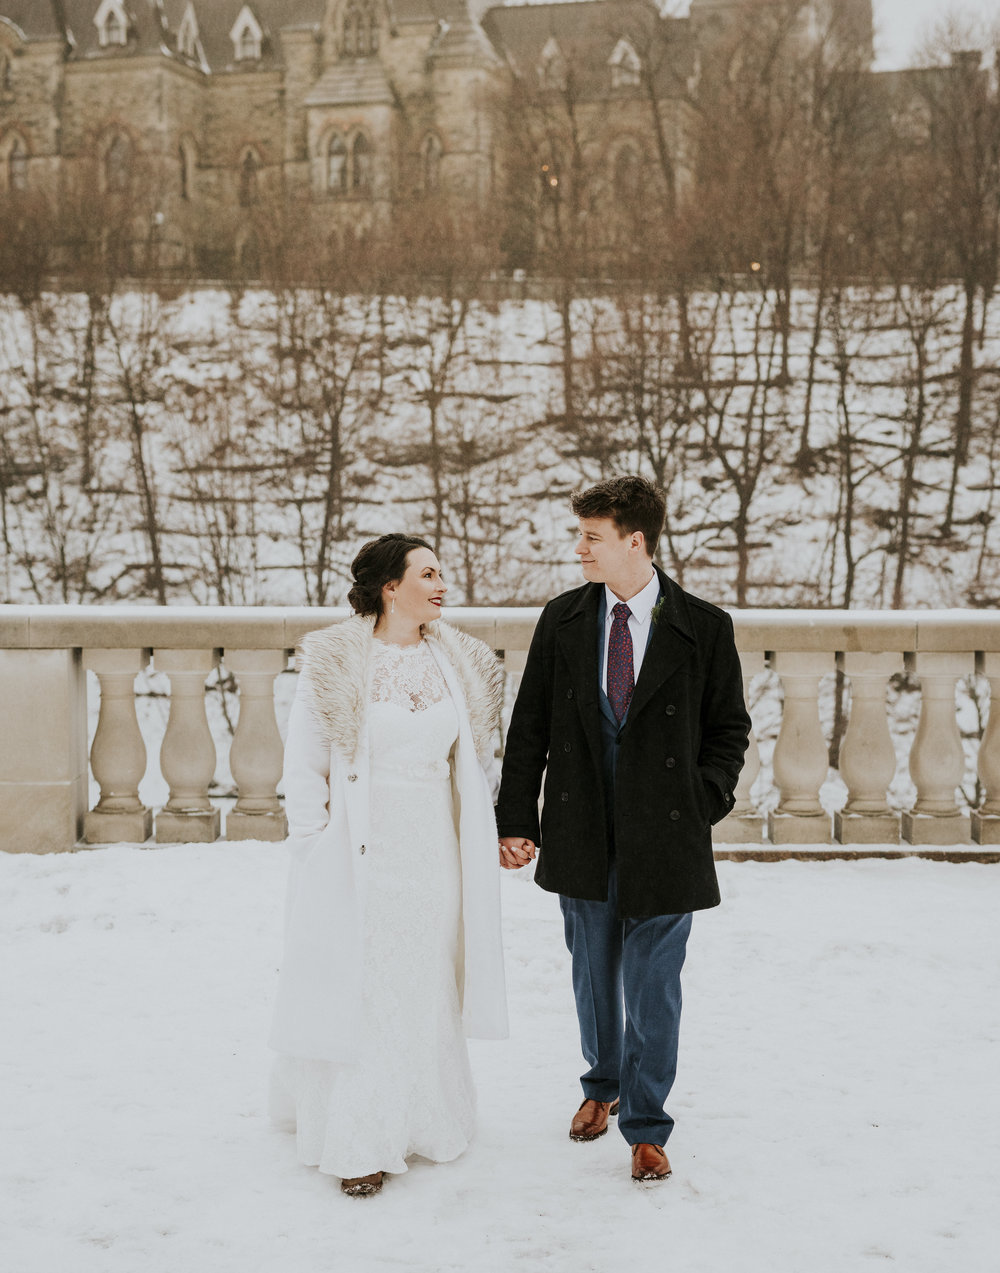 001_Bride + Groom Portraits-037.jpg